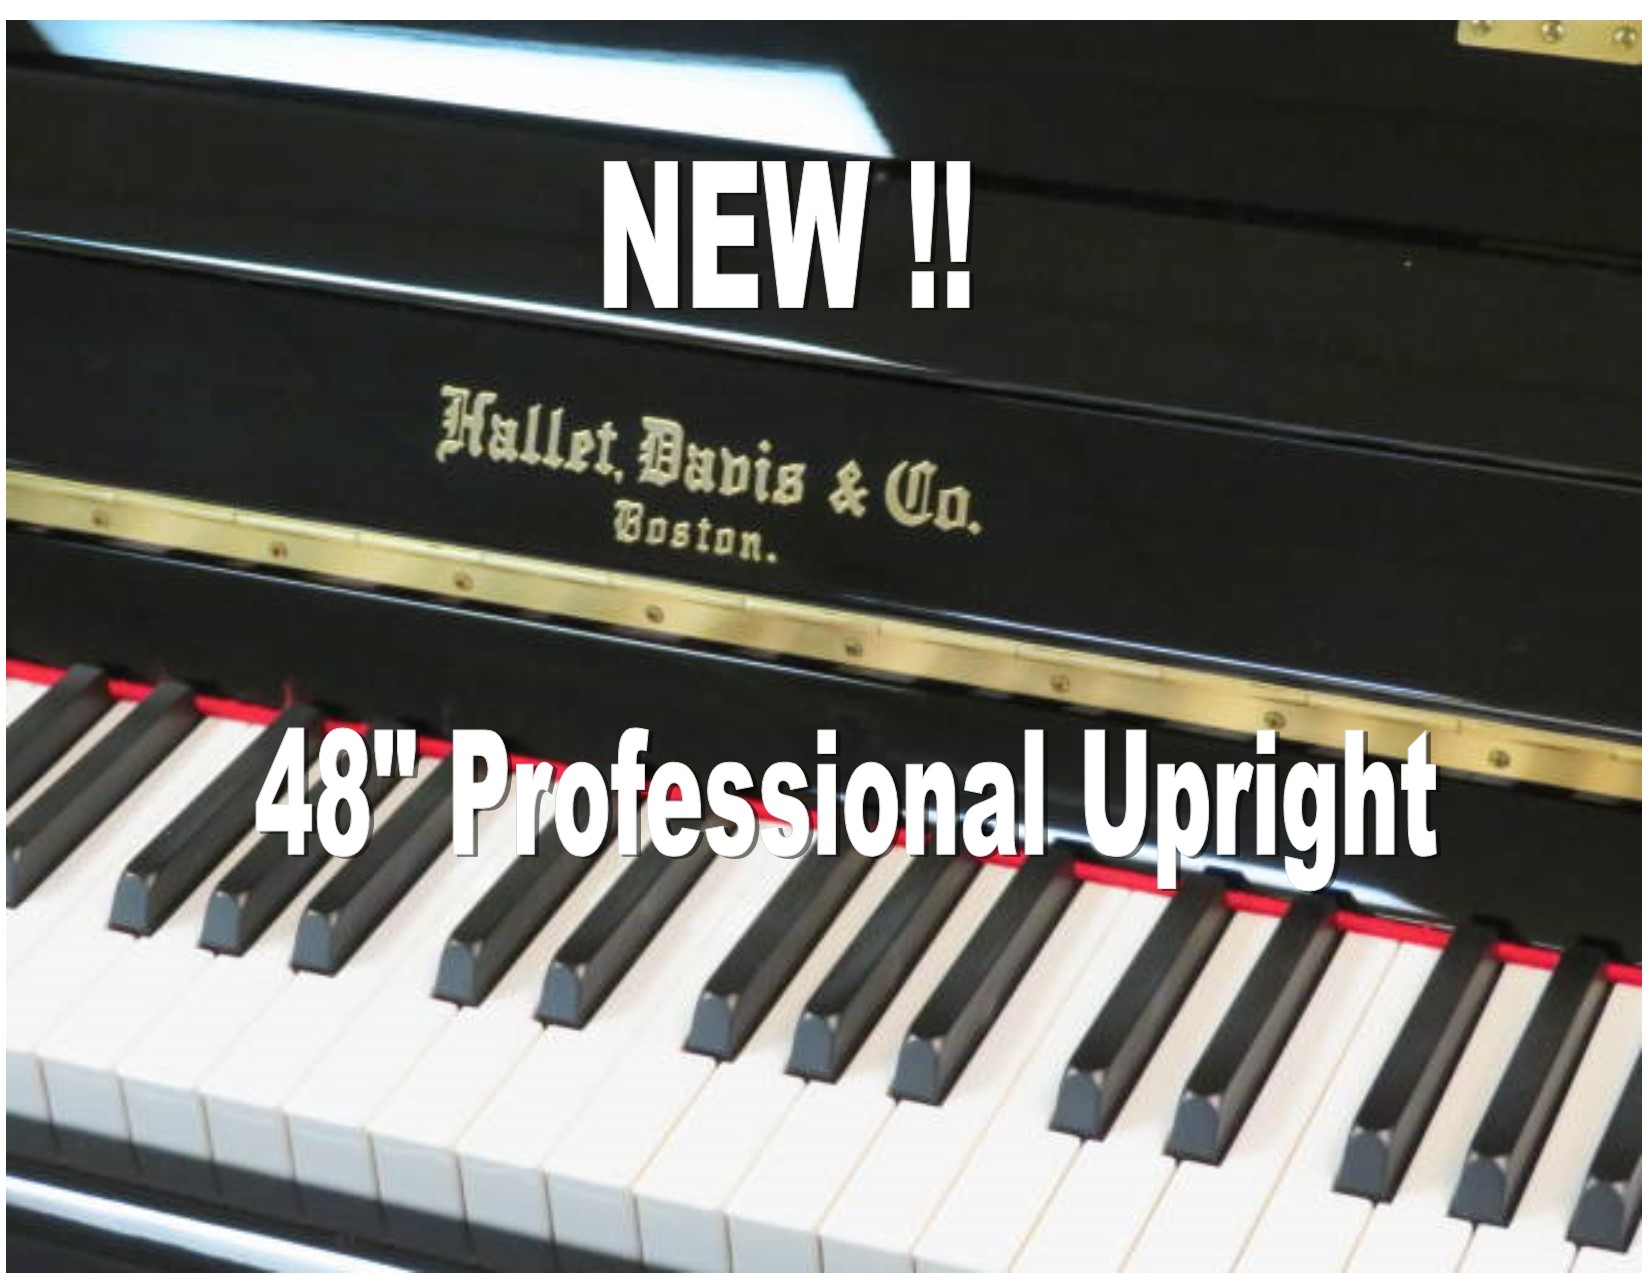 "15363 <br><font color=""black""><b> NEW HALLET DAVIS</b></font> 48″ Professional Upright<br> •European Design<br> •European Sound <br>•European Tradition <br><font color=""blue""><b>Click Picture for ""Live Video""</b></font>"